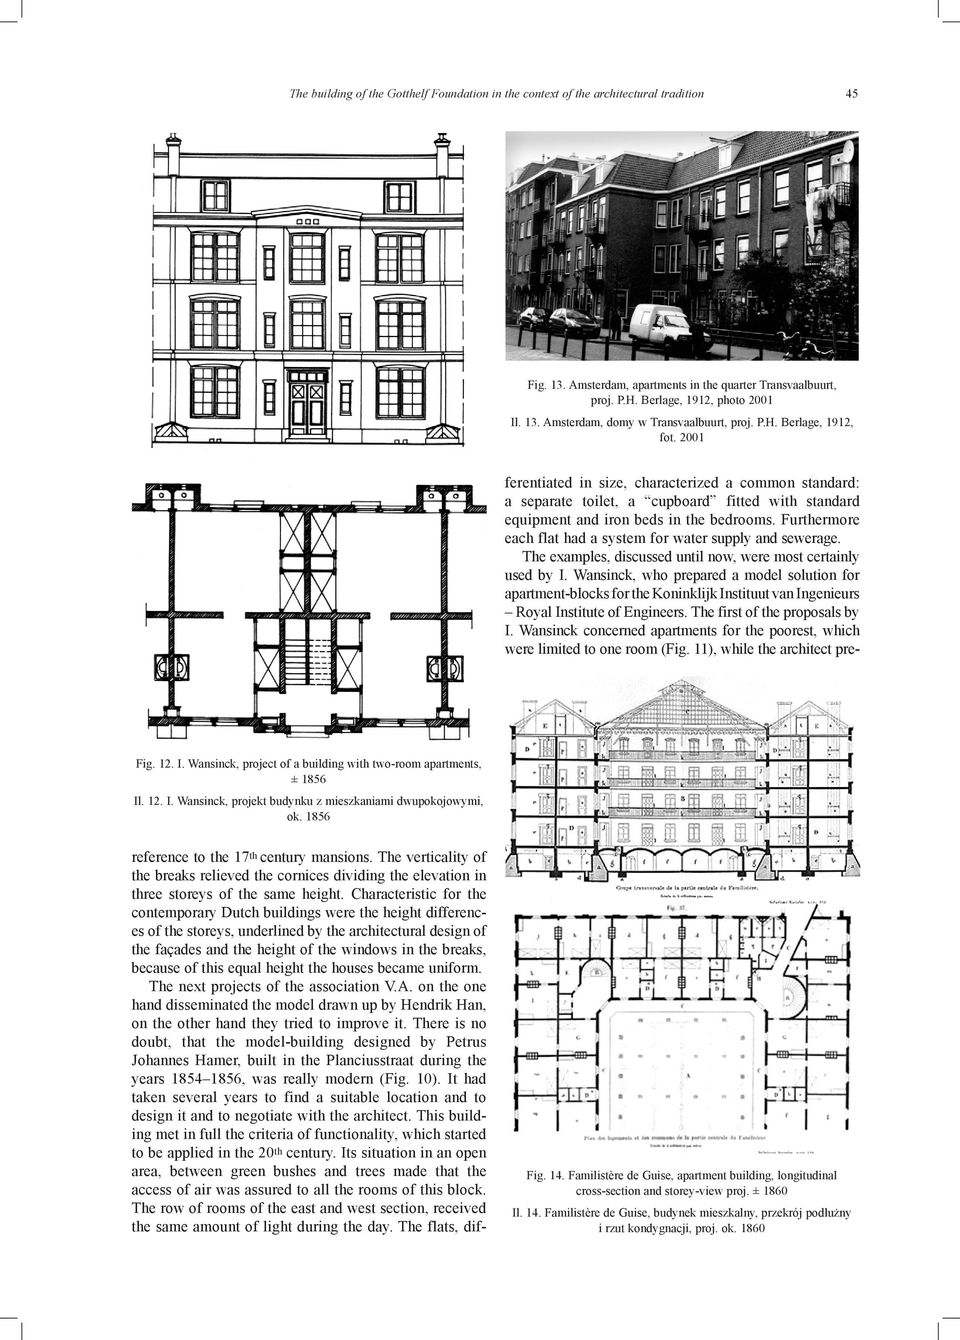 Characteristic for the contemporary Dutch buildings were the height differences of the storeys, underlined by the architectural design of the façades and the height of the windows in the breaks,